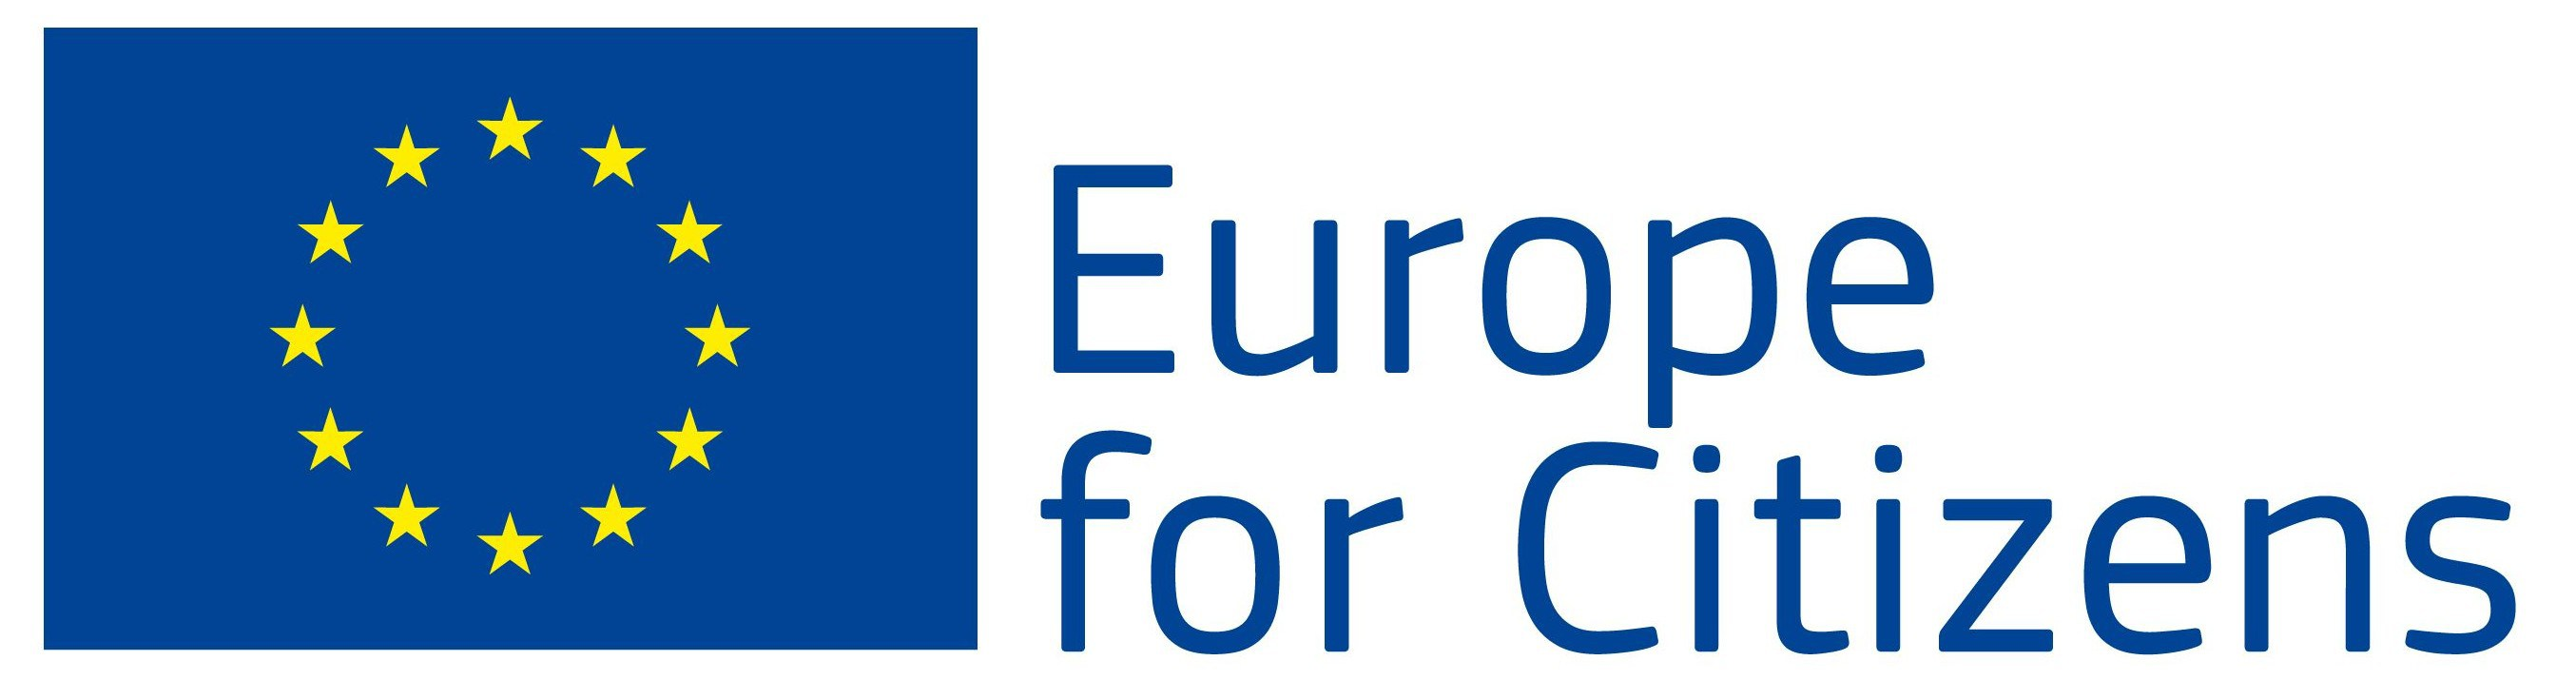 Europe-for-Citizens-logo-e1425405177295